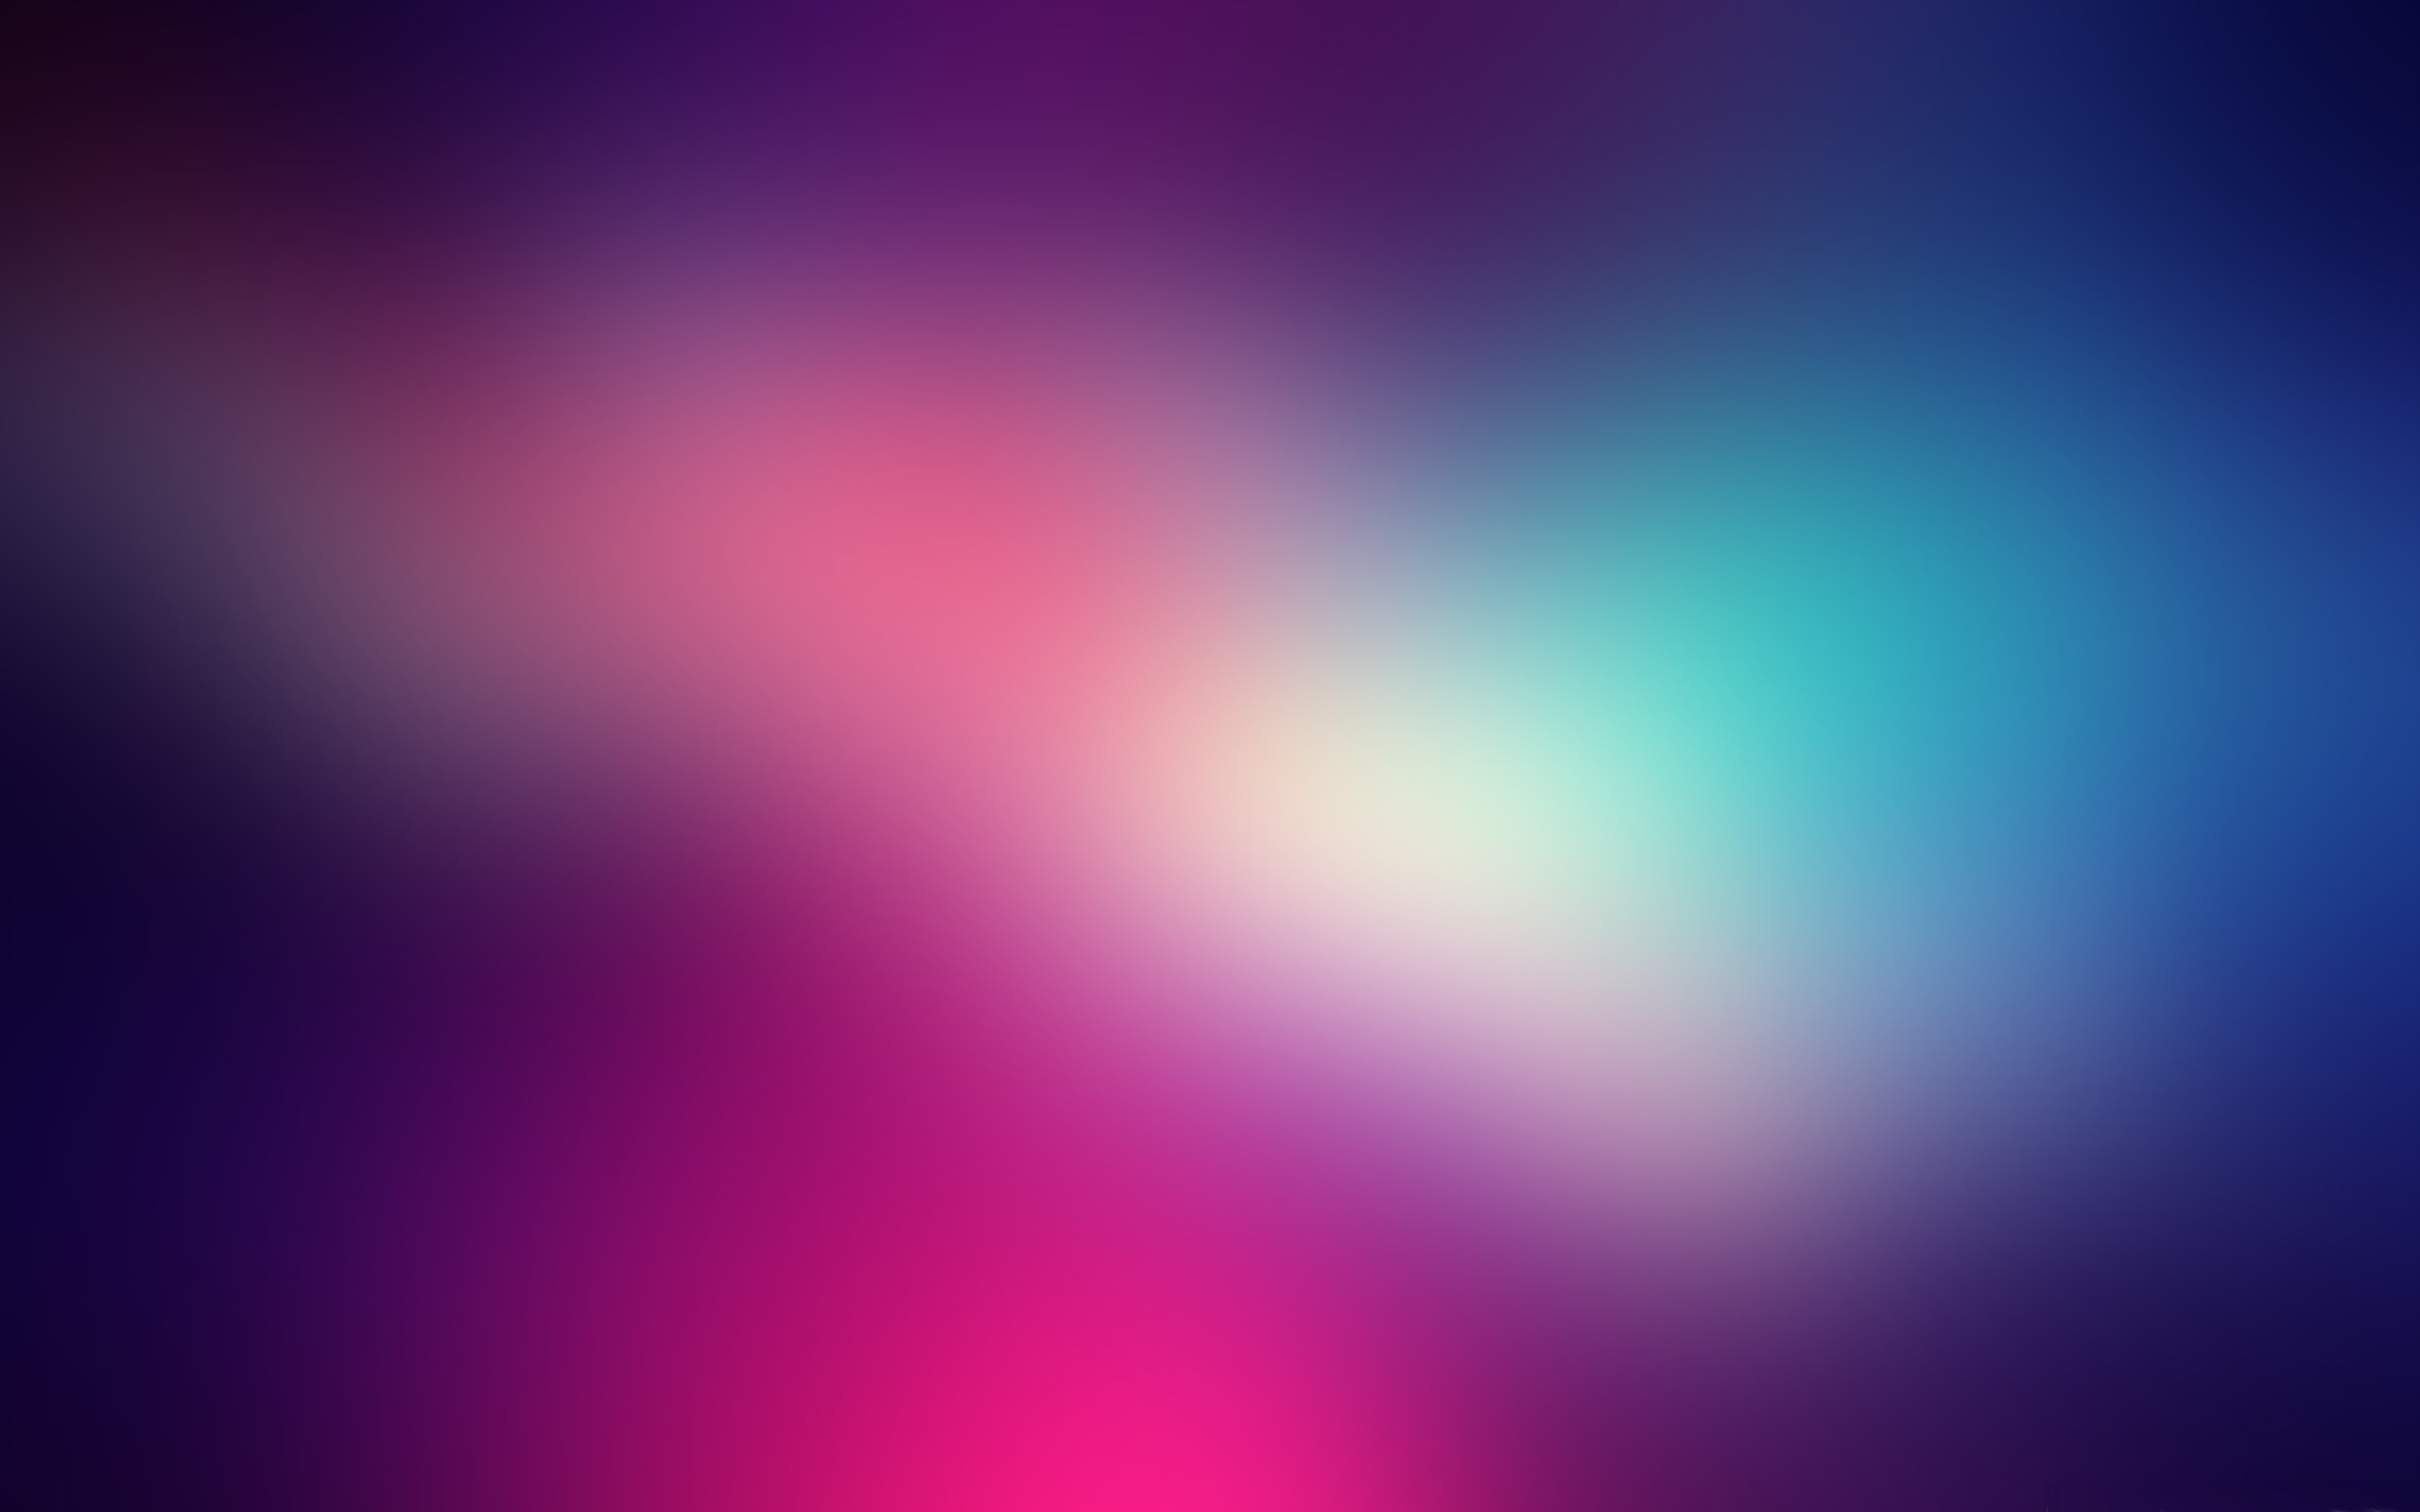 IOS7 Wallpaper 24599